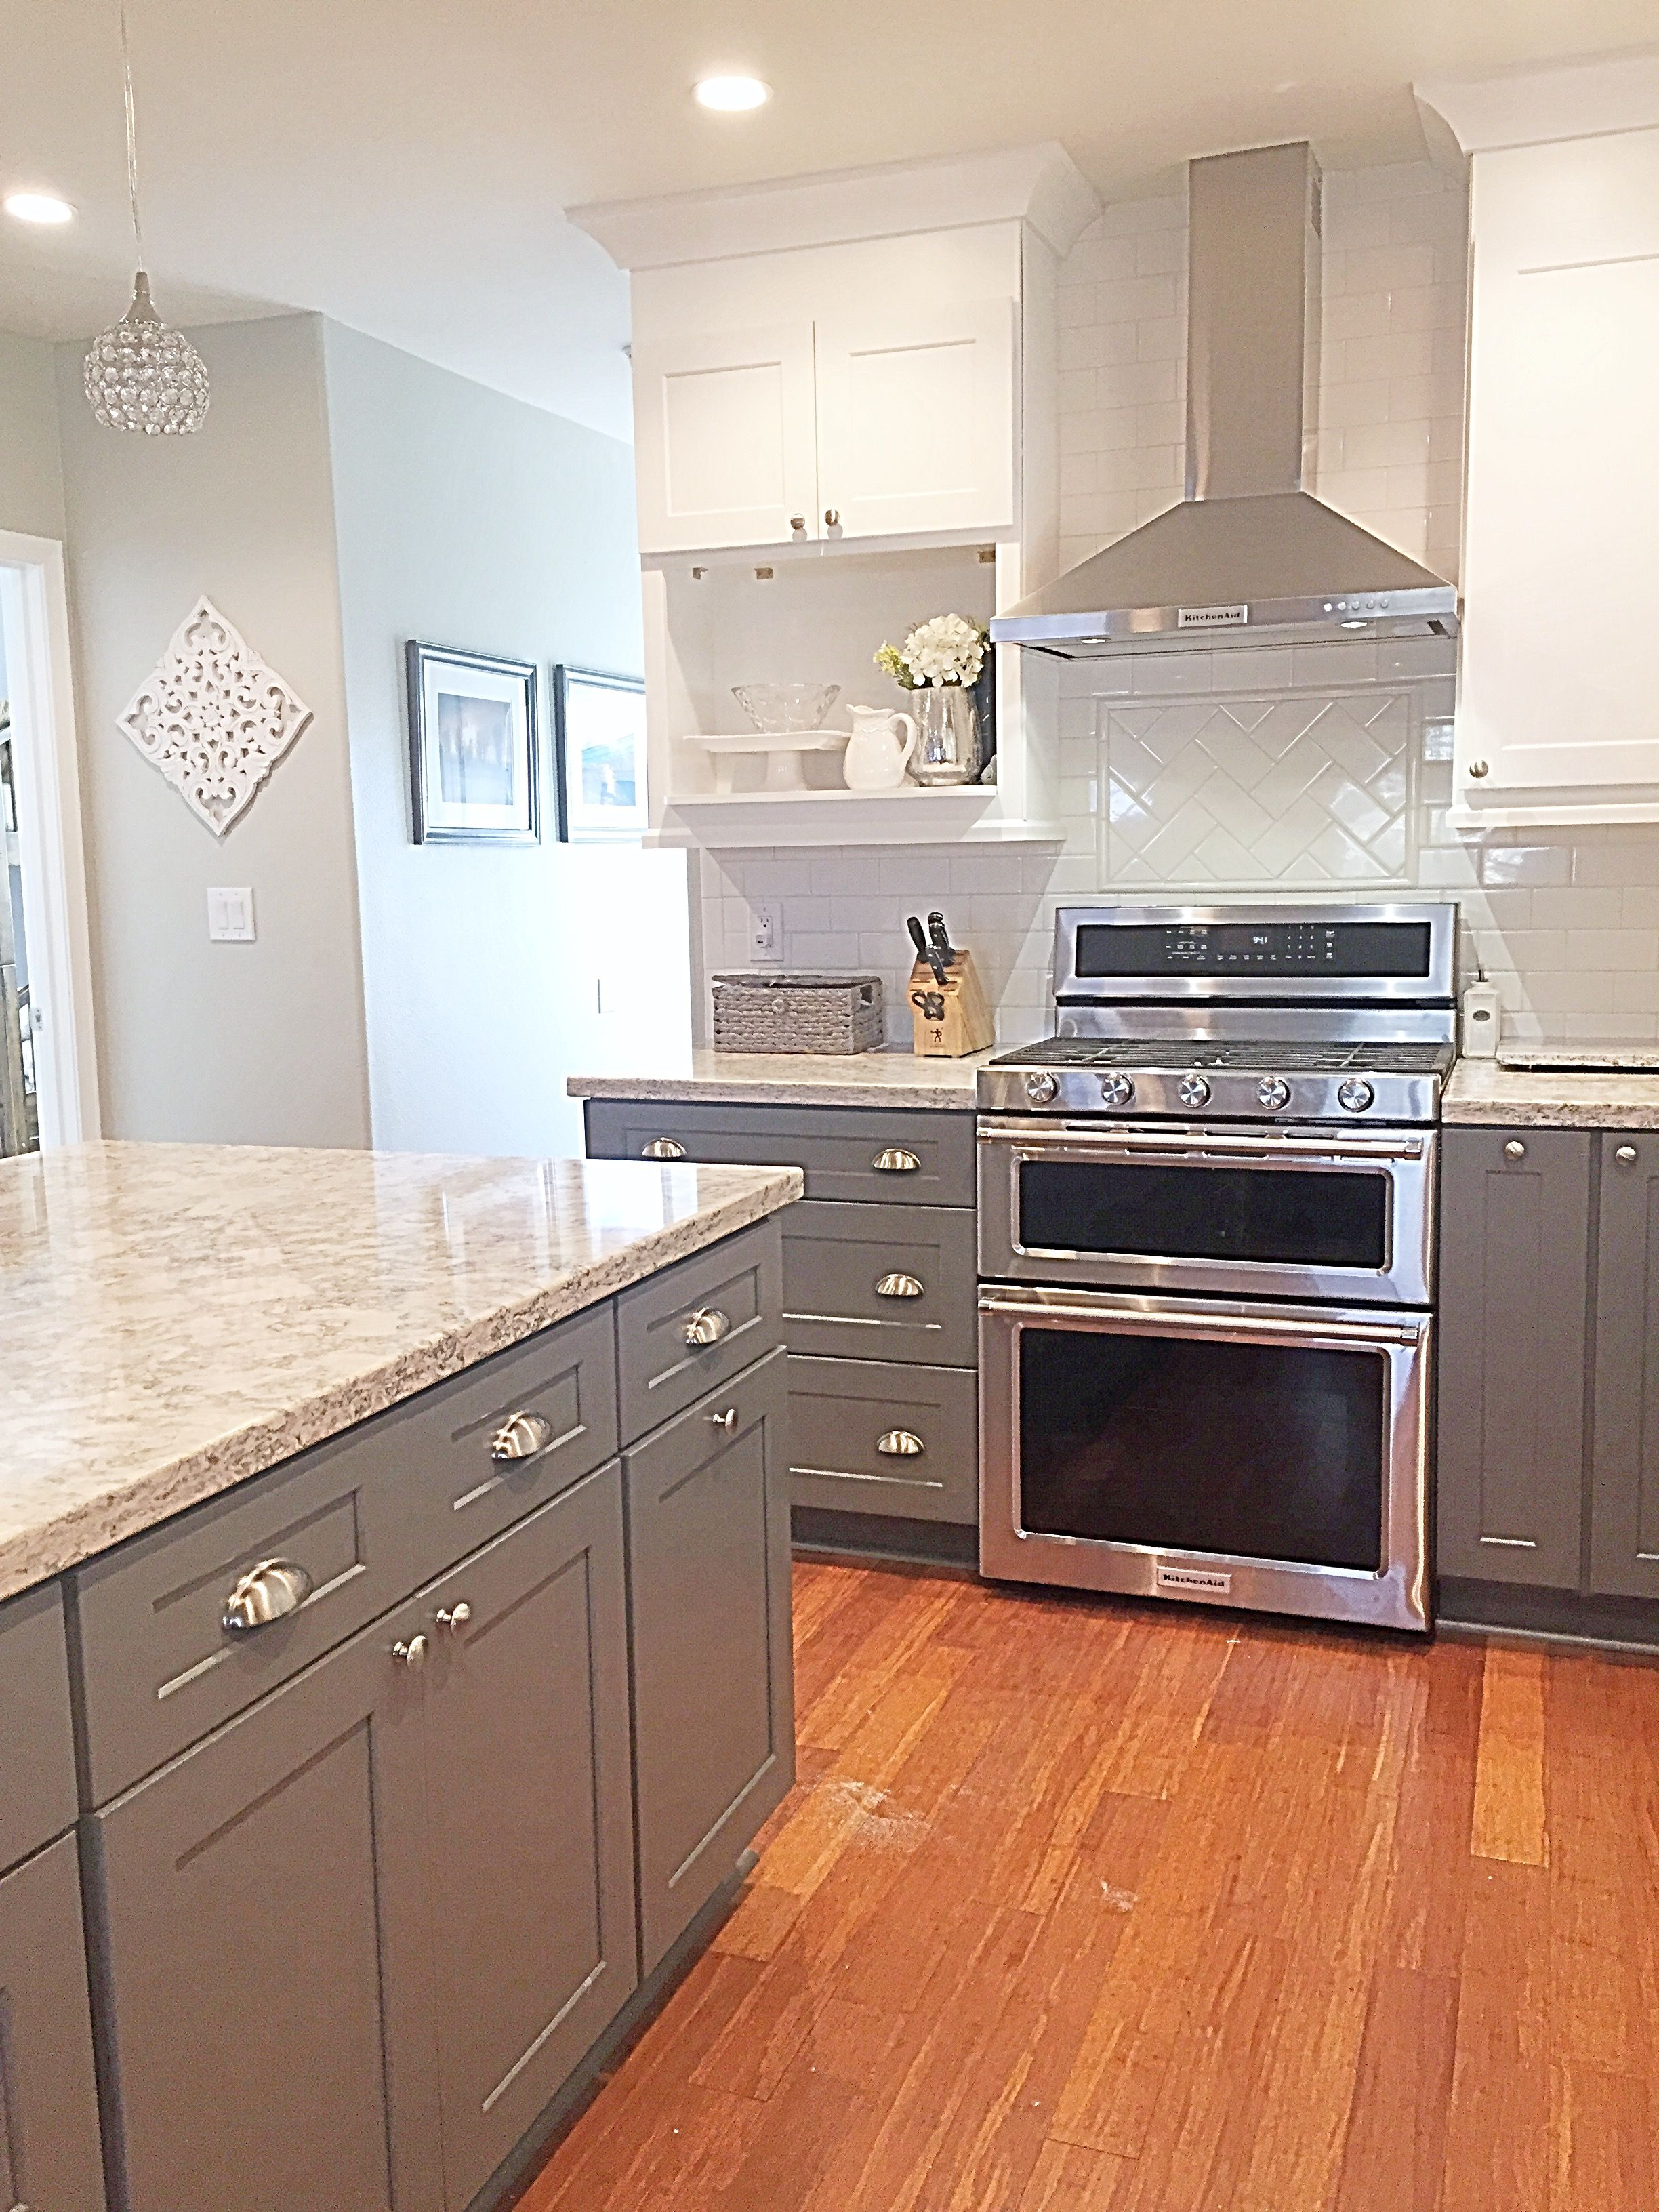 Two Toned Cabinets Kitchen Cabinets Decor Kitchen Cabinet